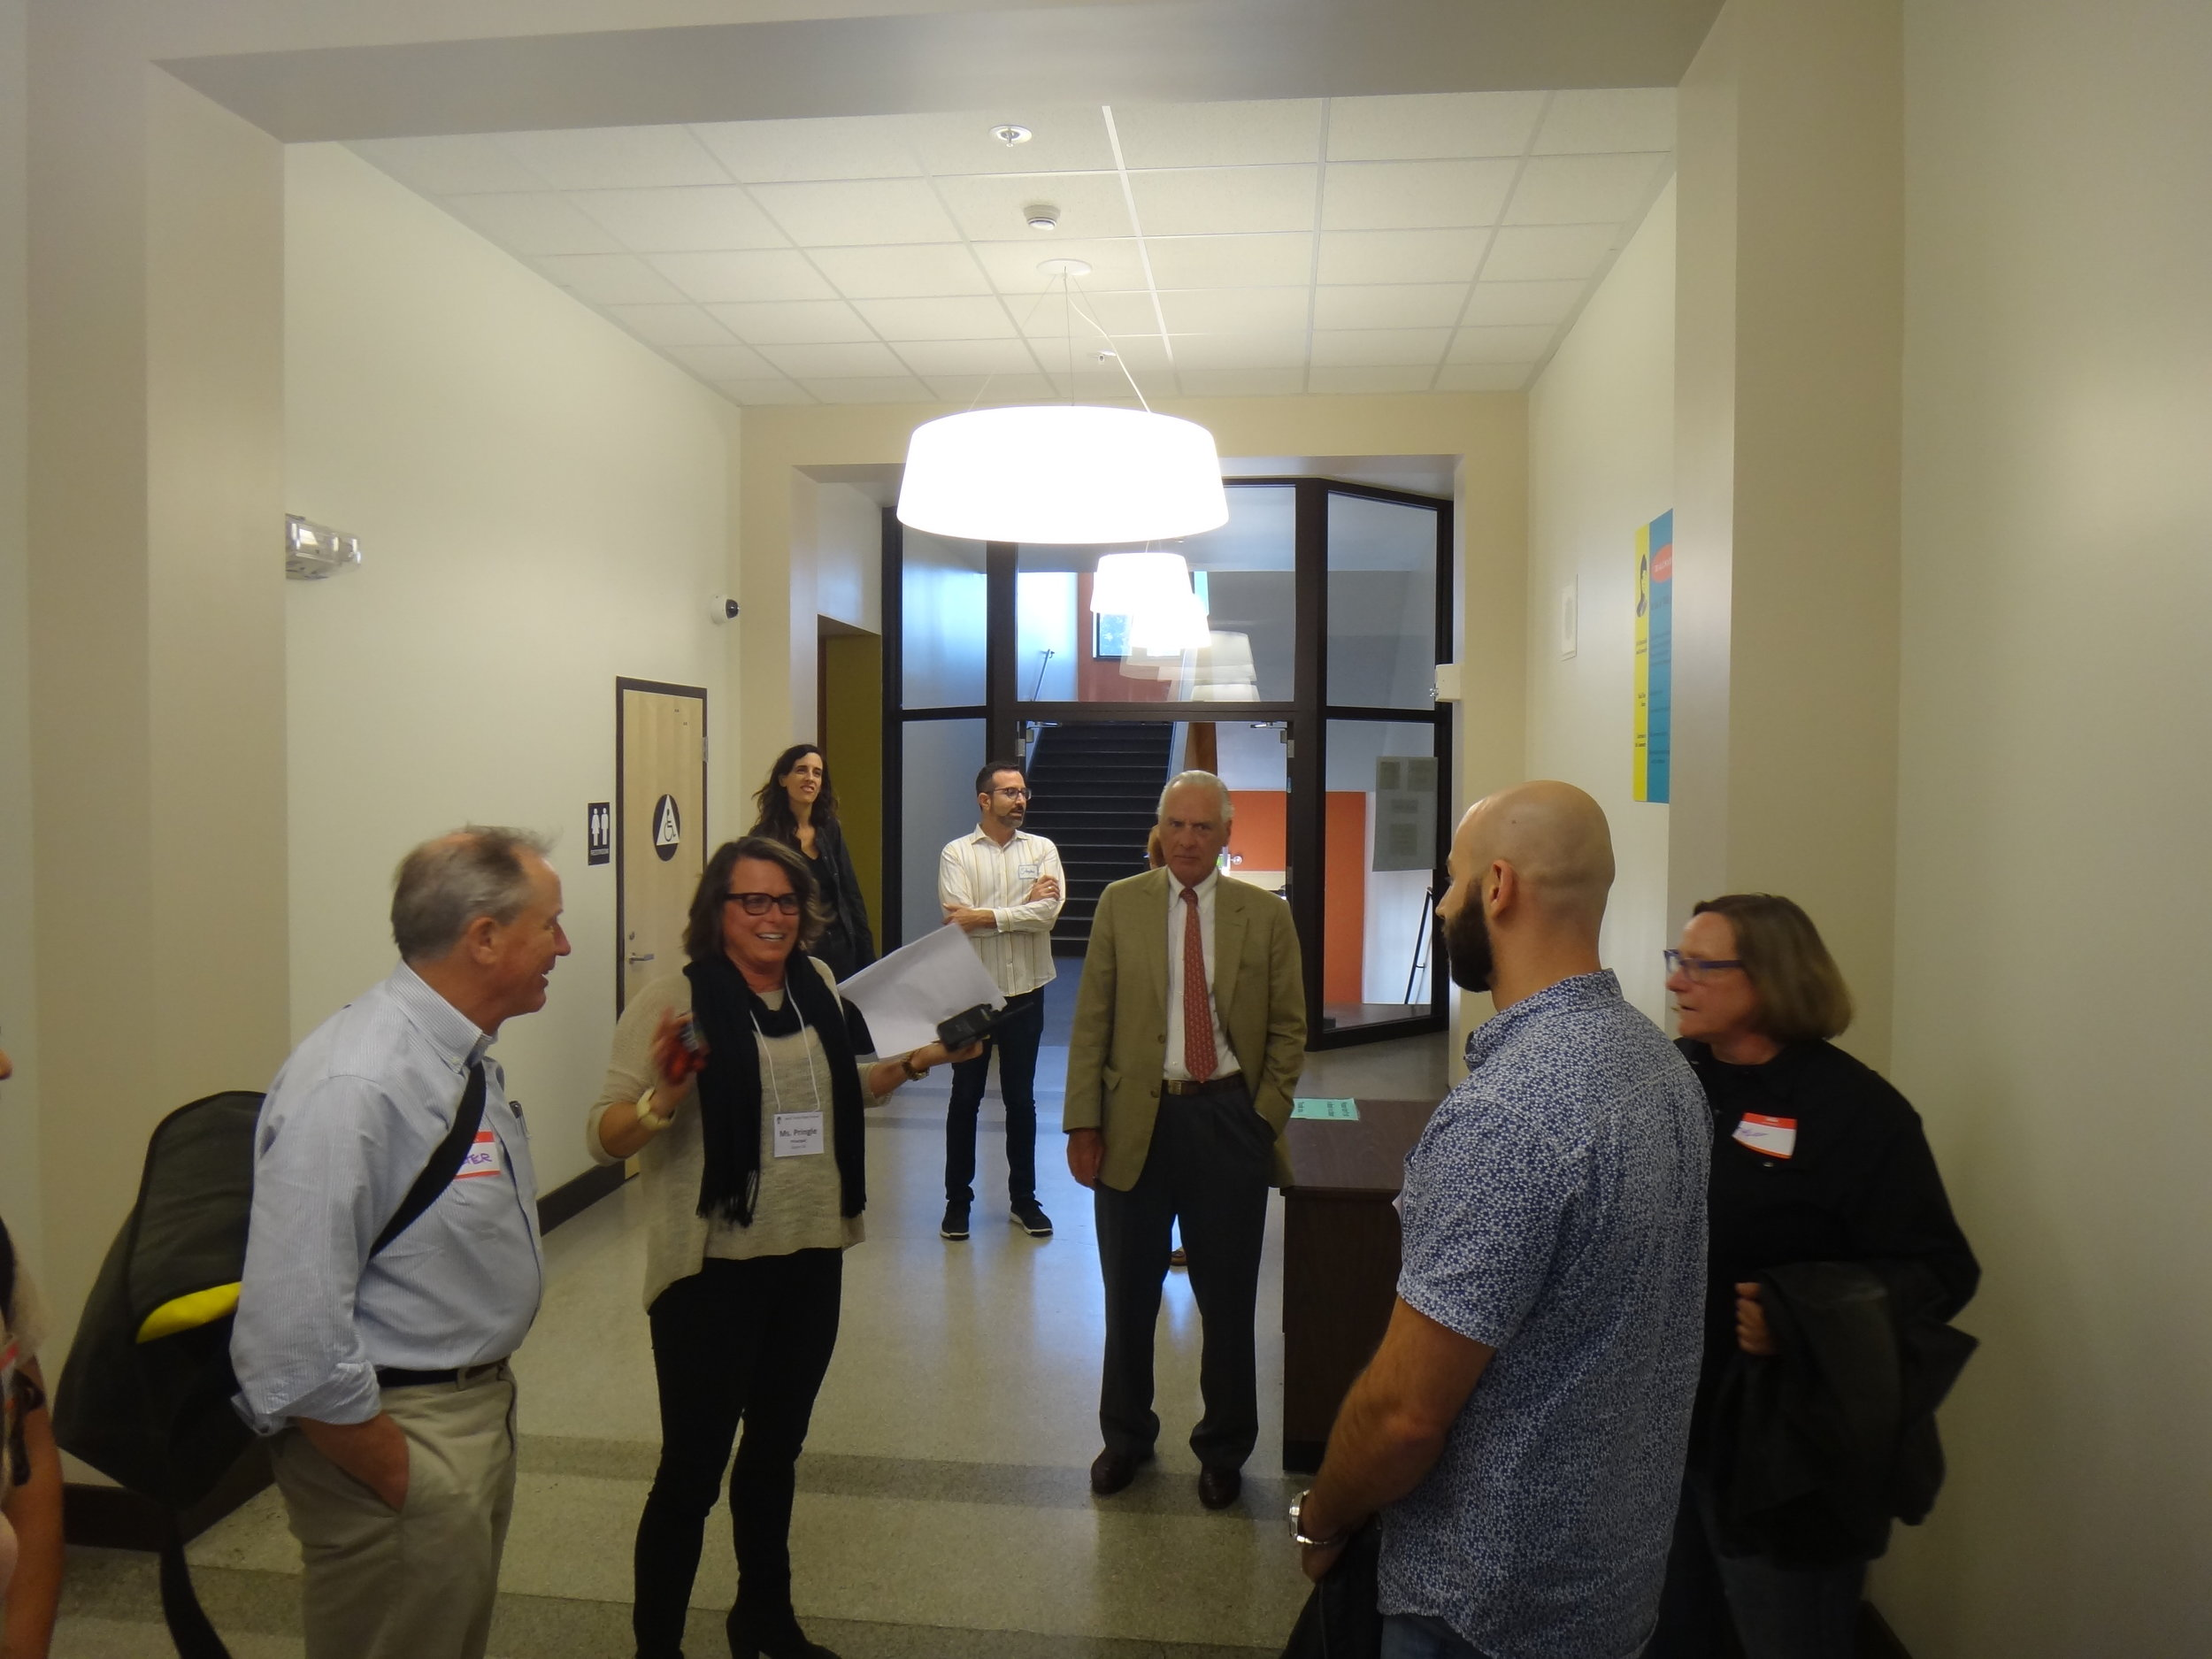 Principal Katie Pringle greets guests to the Ida B Wells Open House in the corridor at the crossroads of the remodeled entrance and administrative offices.